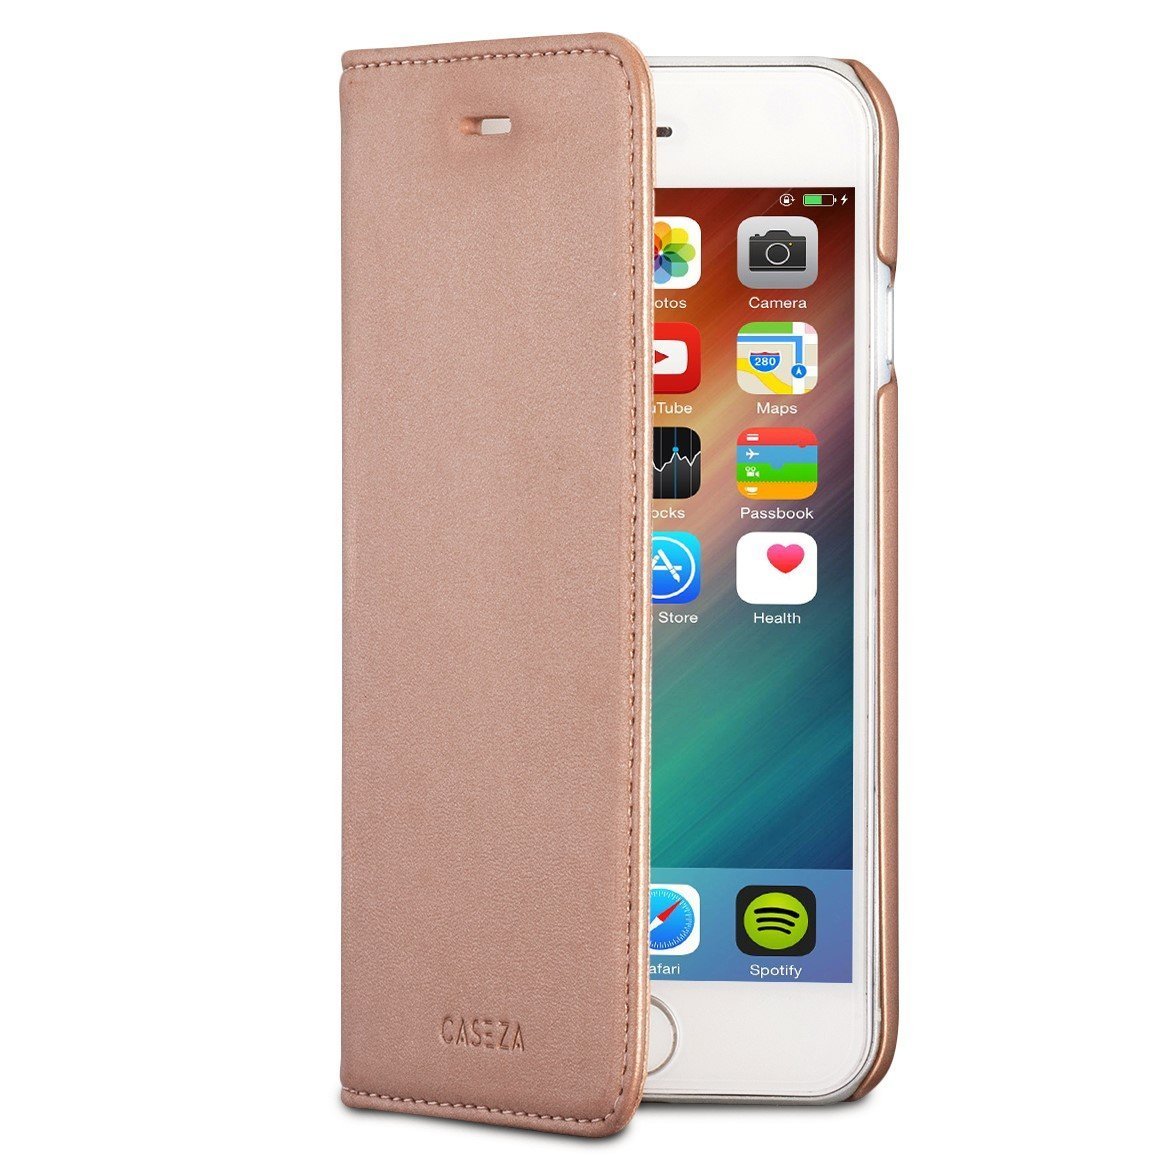 "CASEZA iPhone 7 PU Leather Flip Case ""Oslo"" Rose Gold - Premium Vegan Leather Wallet Book Folio Cover for the Original iPhone 7 (4.7 inch) - Ultra Thin with Magnetic Closure"